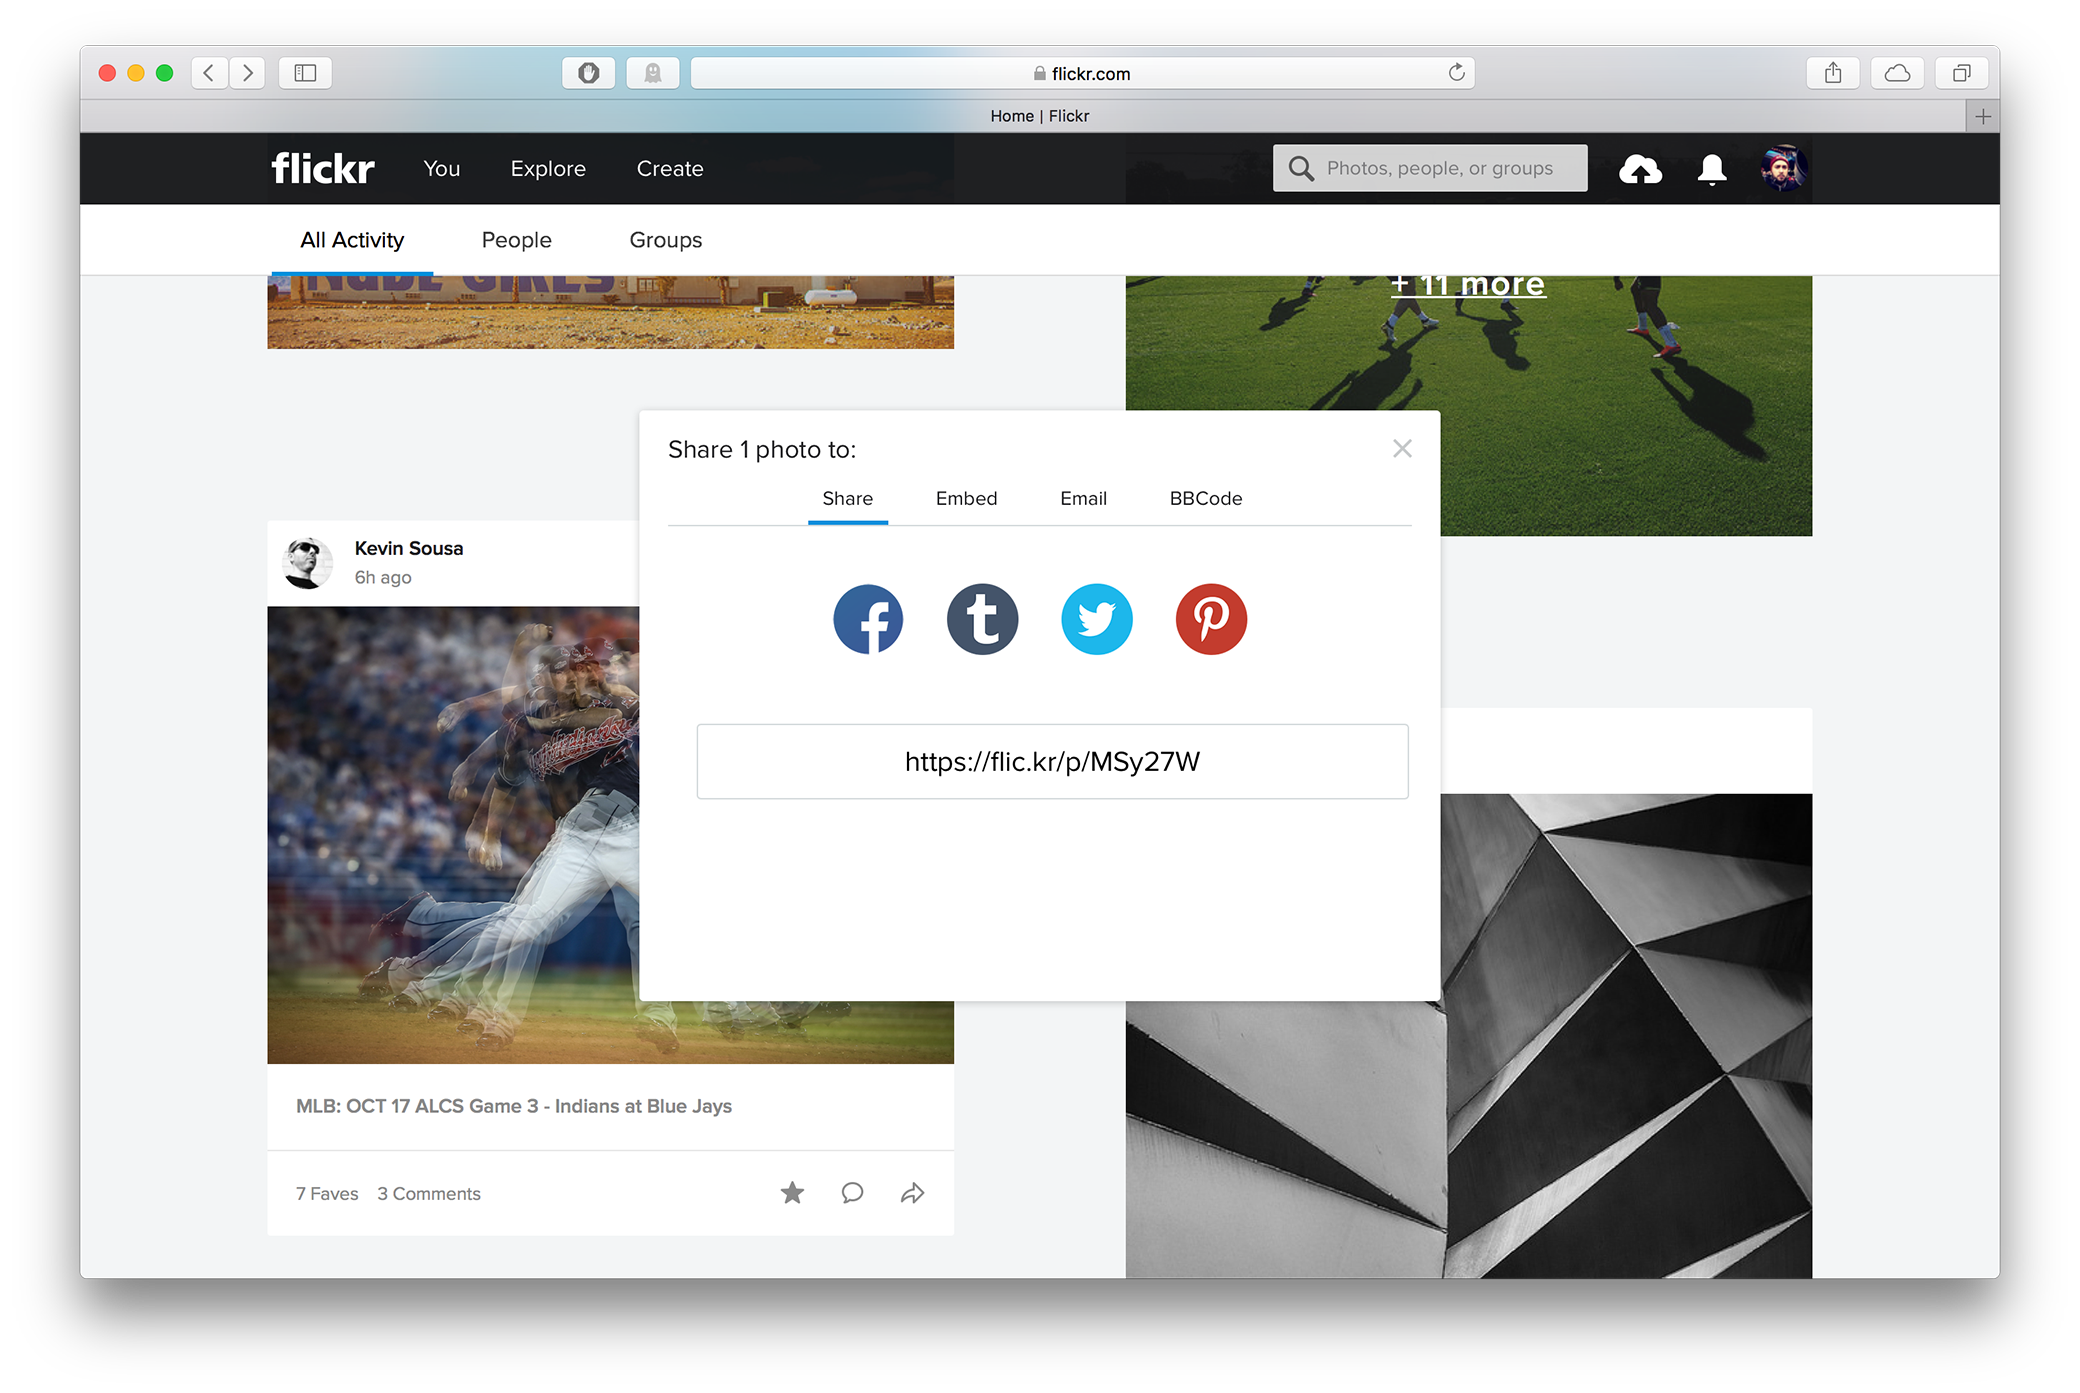 The share pop-up on the new Flickr feed